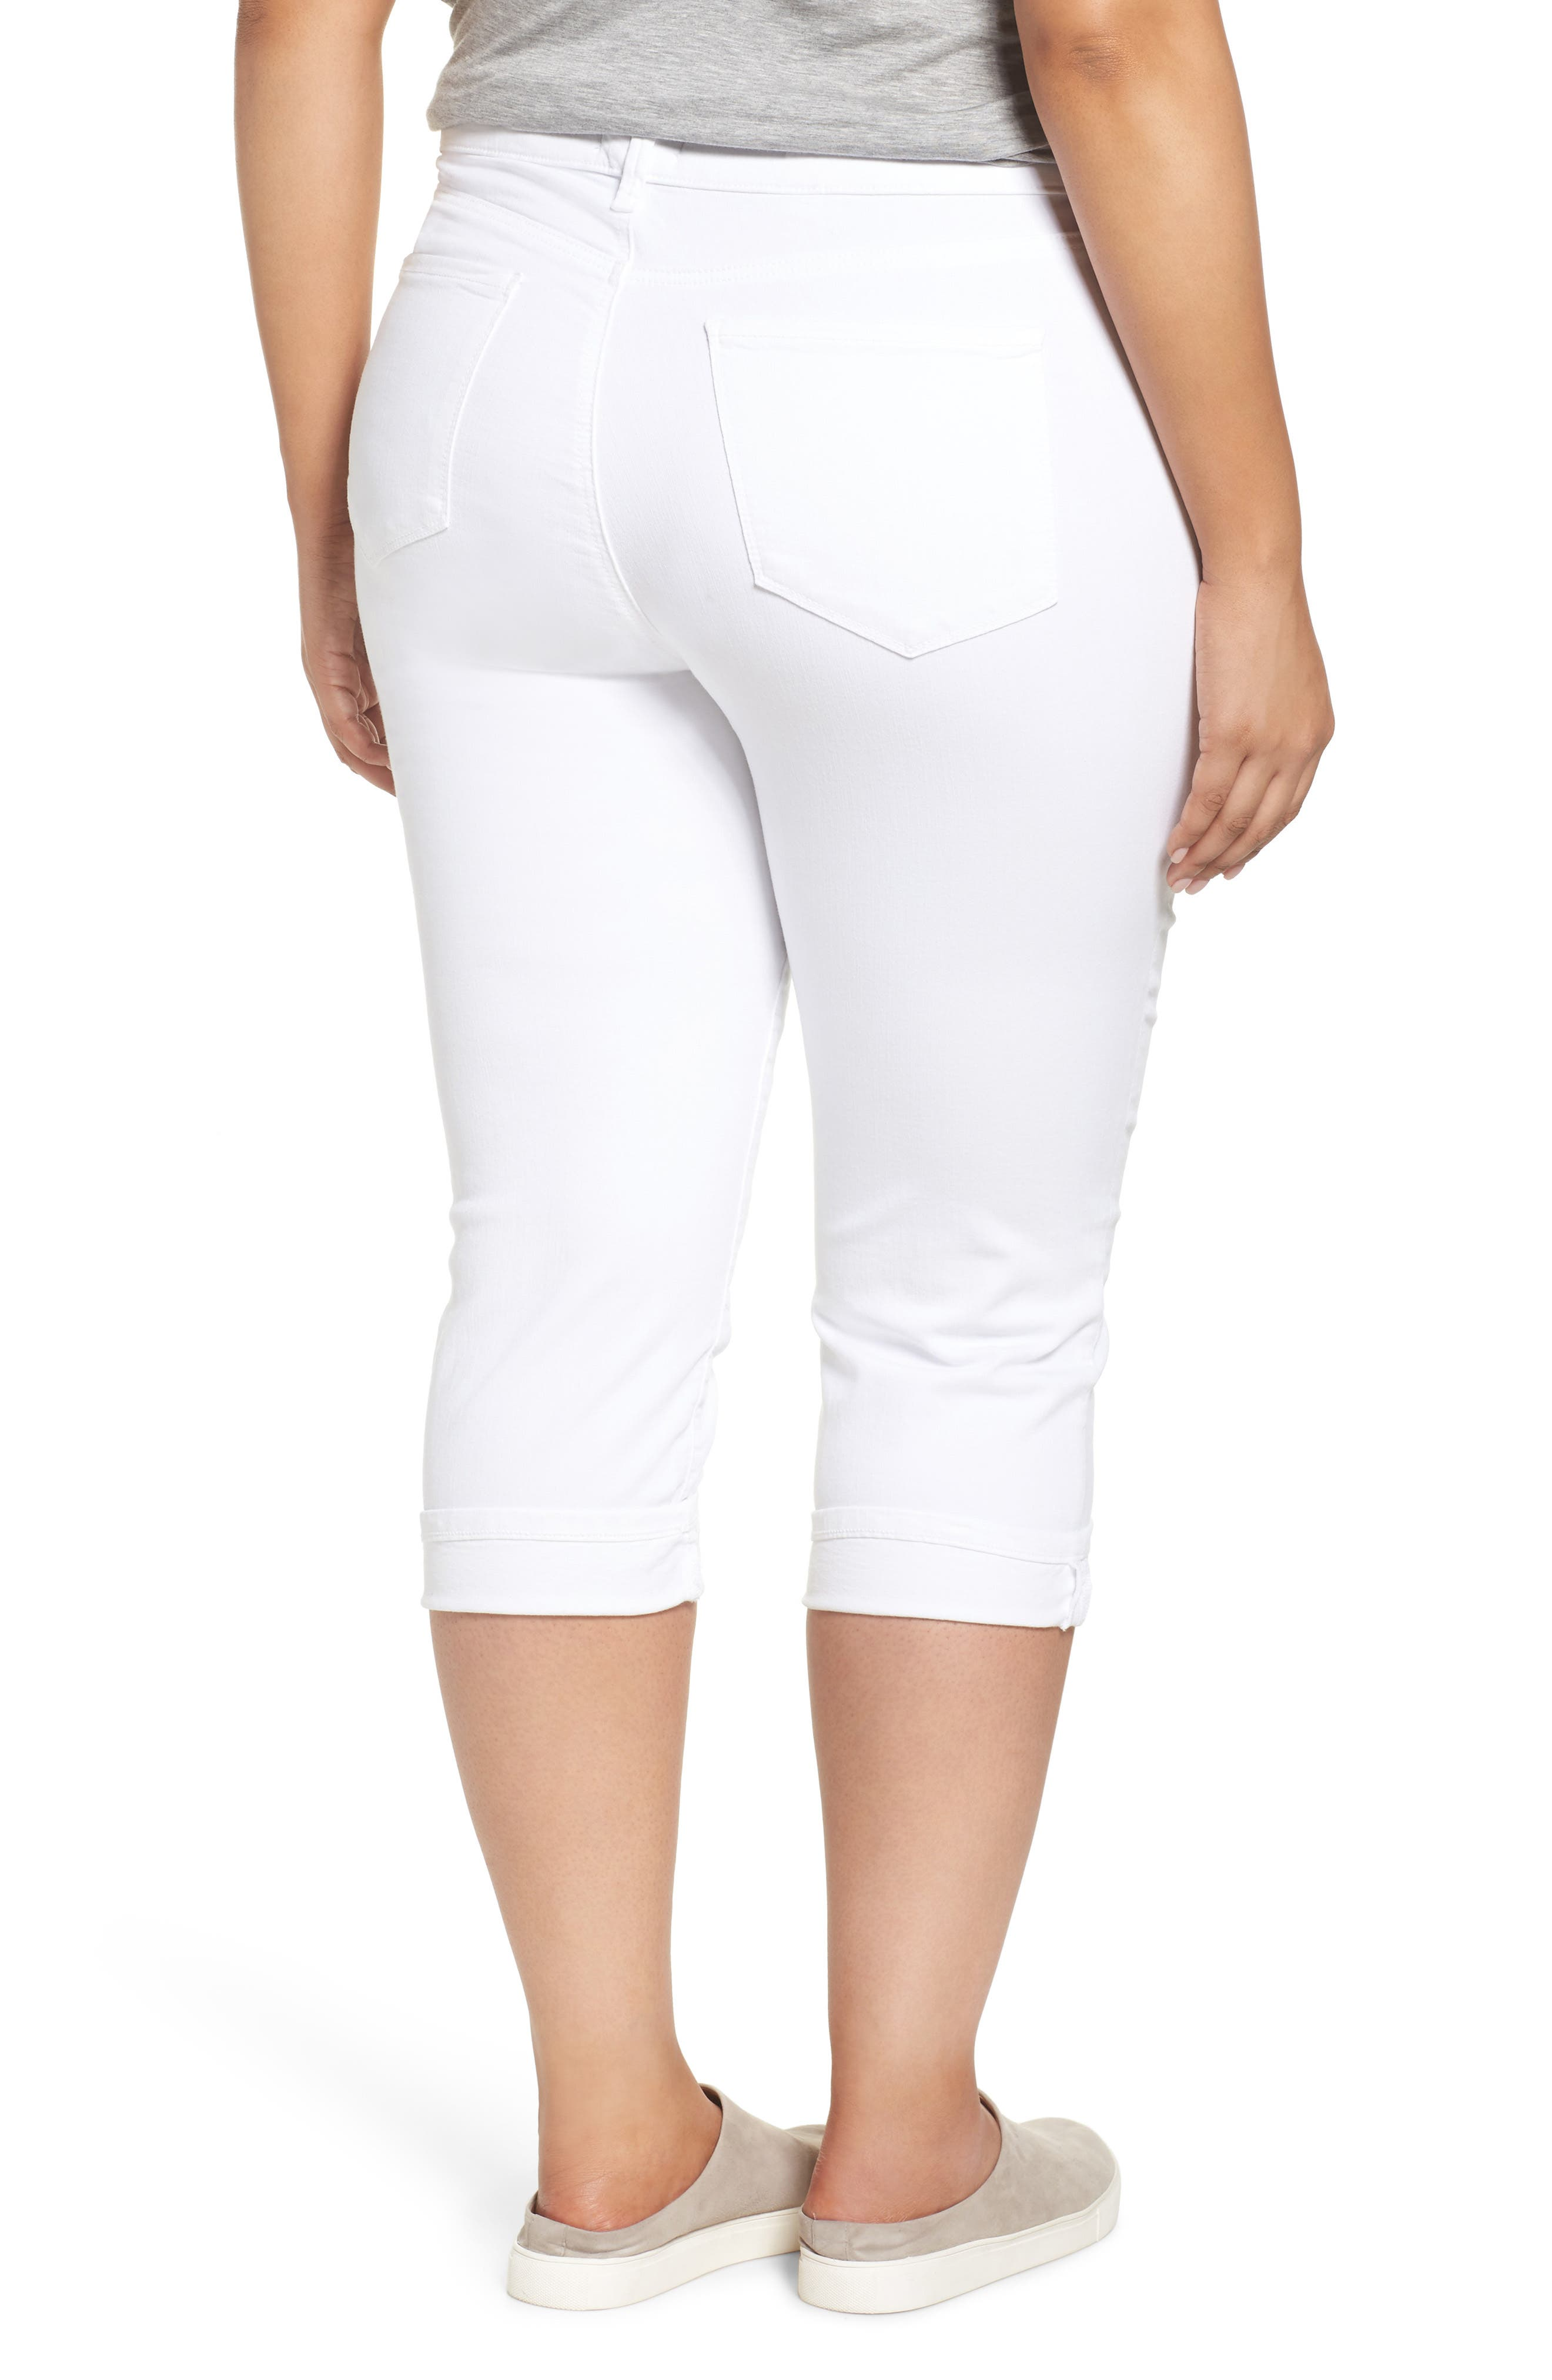 NYDJ, Marilyn Crop Cuff Jeans, Alternate thumbnail 2, color, WHITE